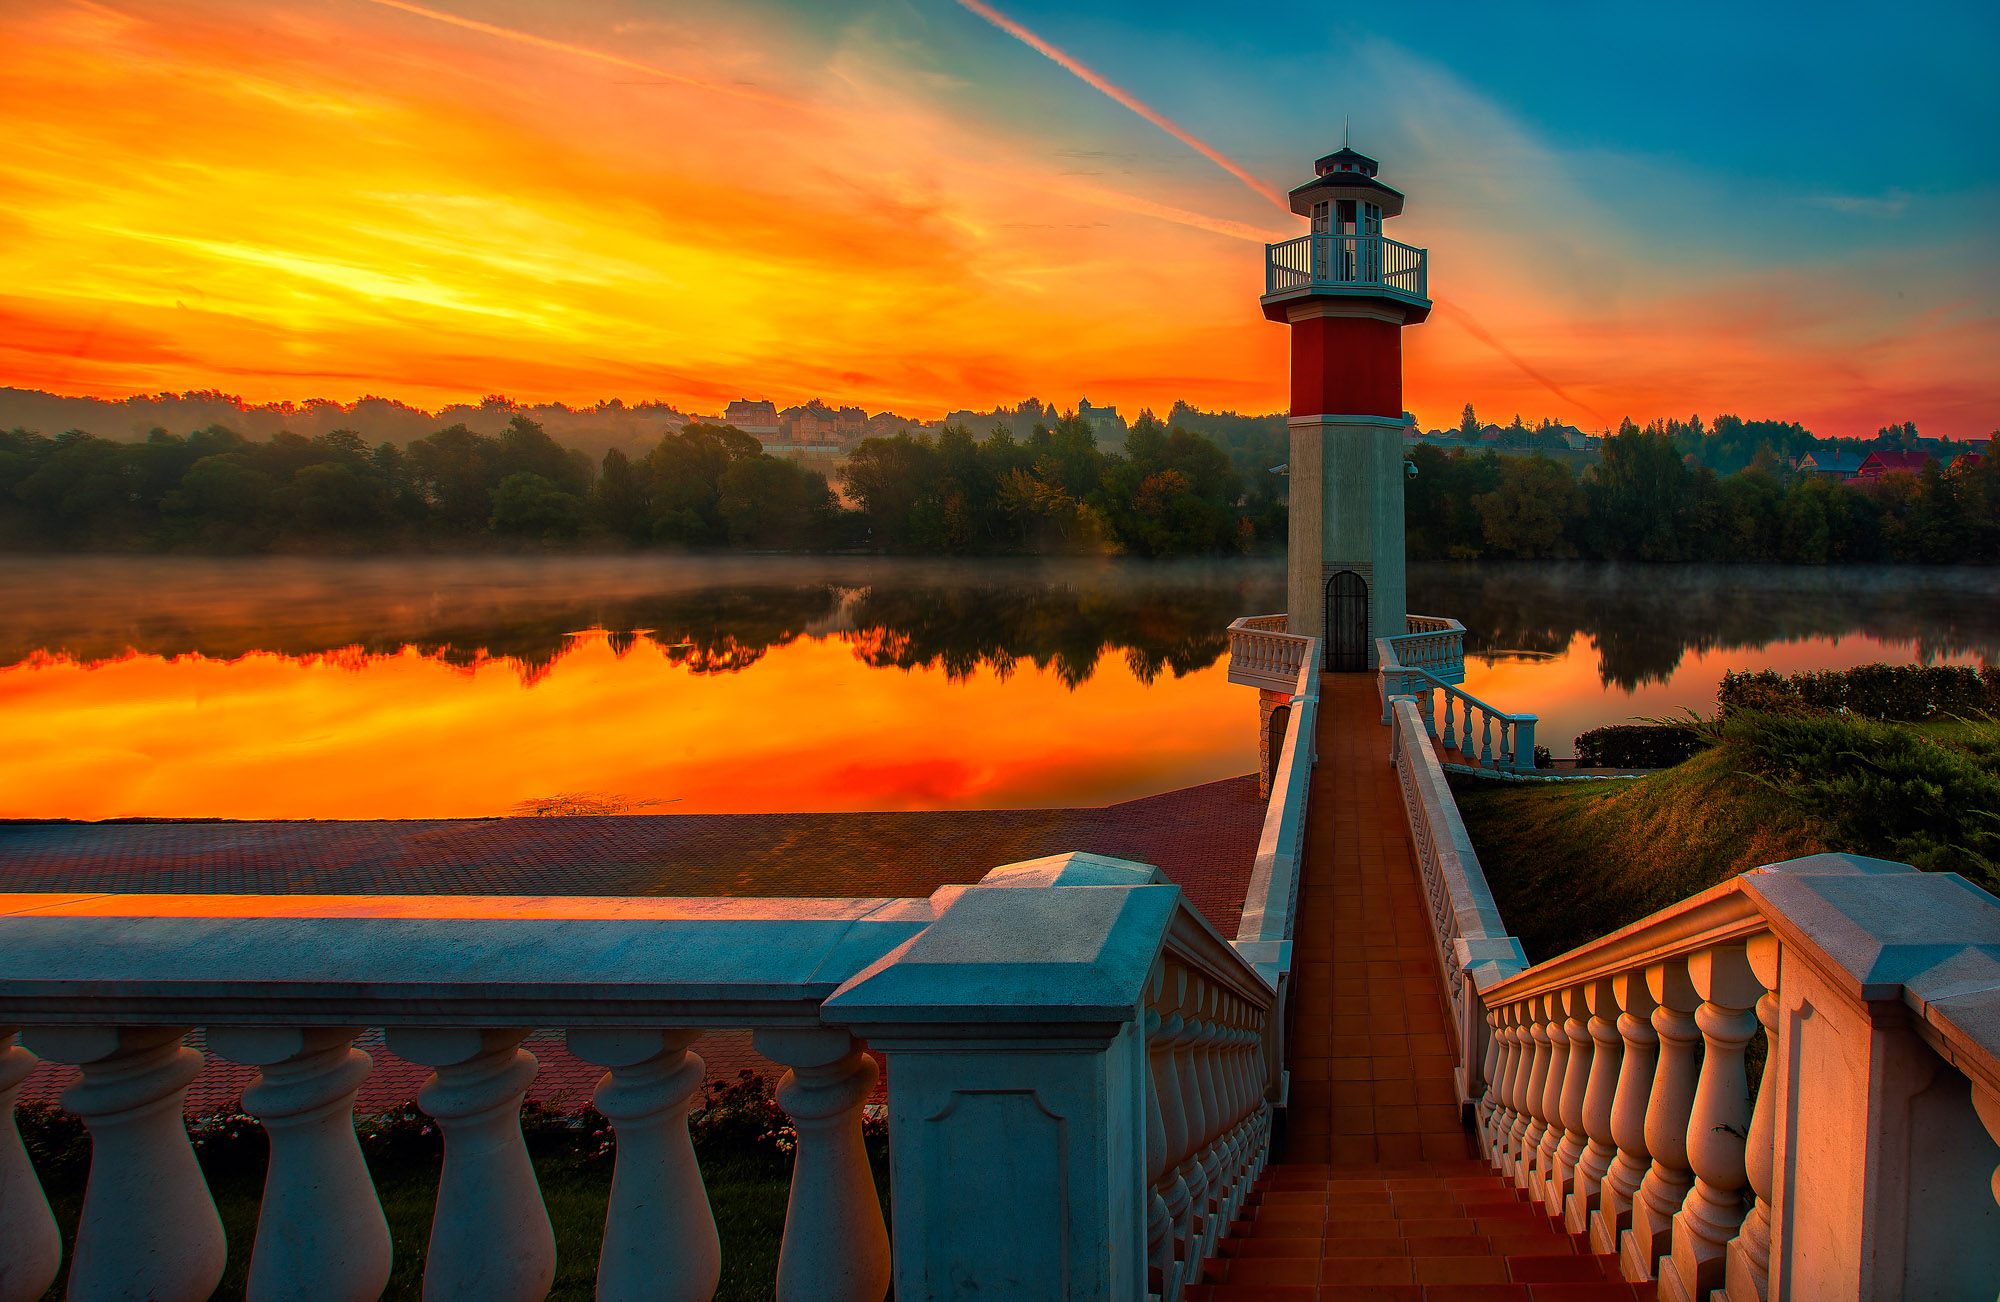 Sunrise at the river with a lighthouse in the foreground